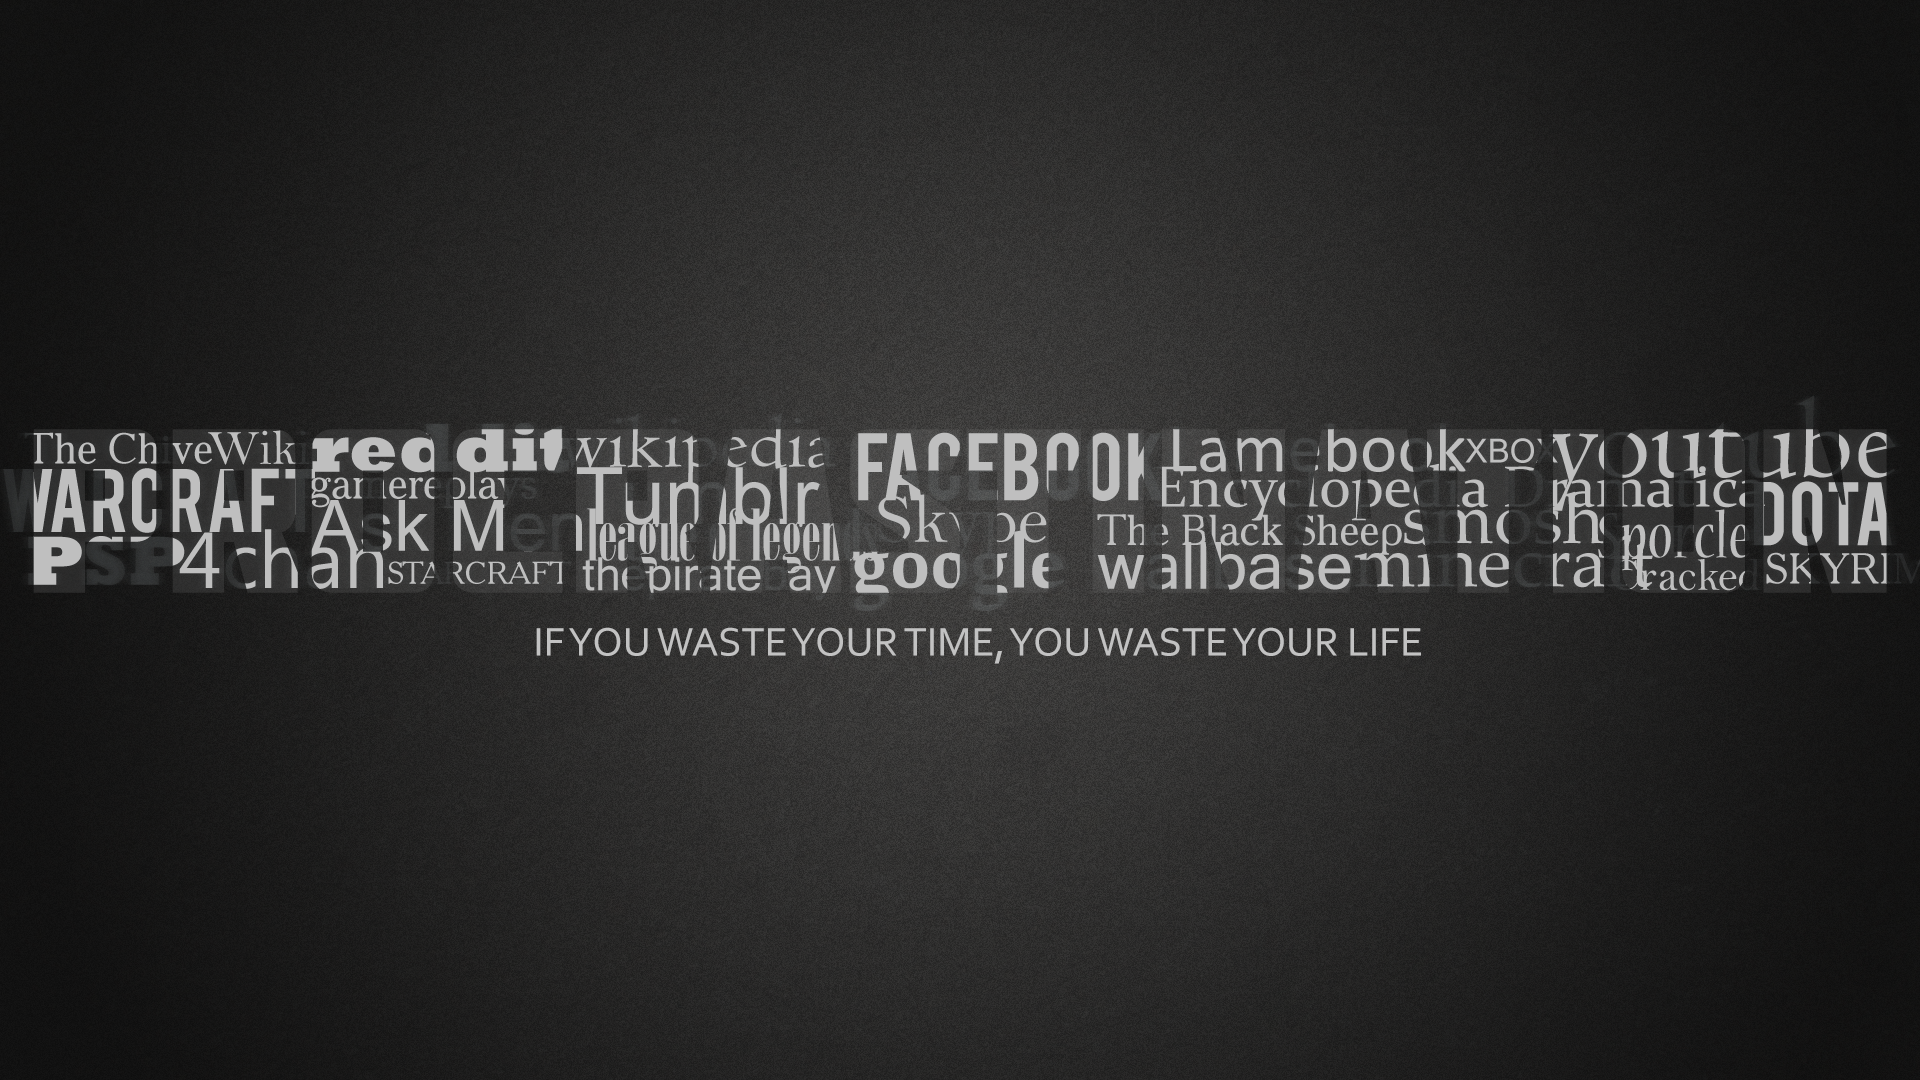 Wallpaper Of Motivational Thoughts